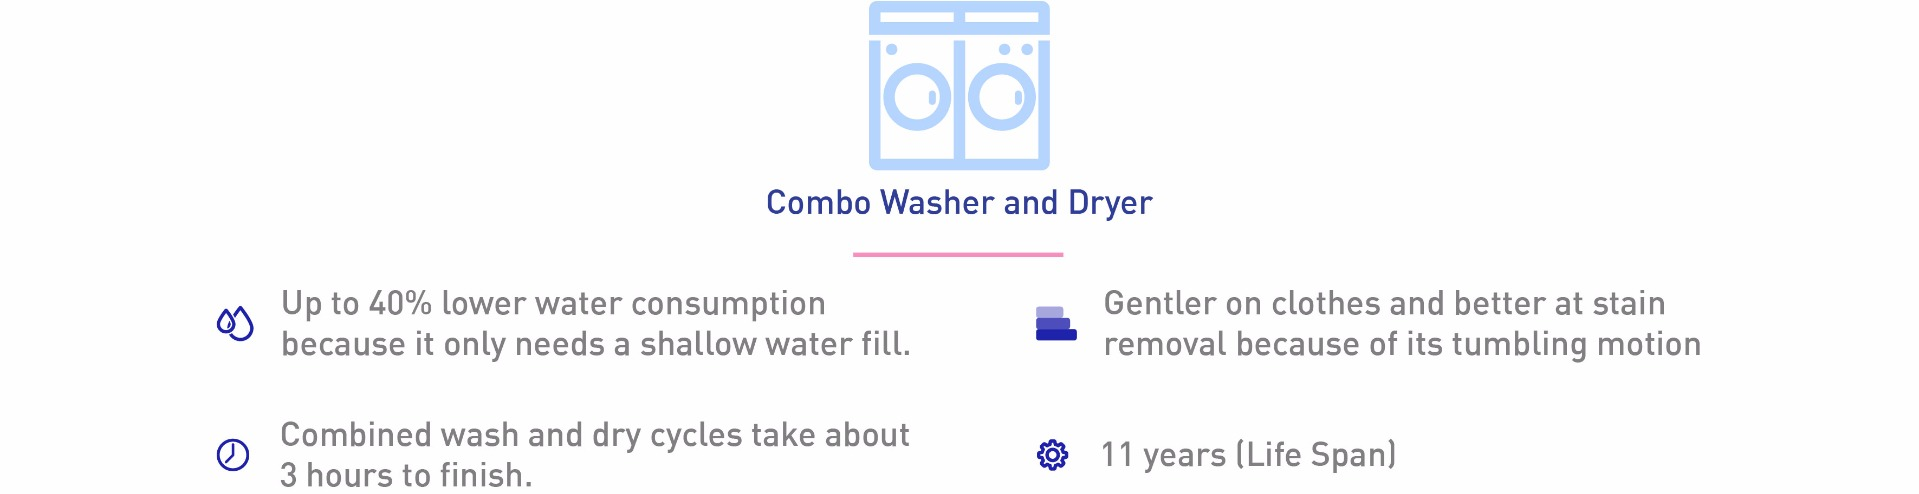 washer buyers guide type 2